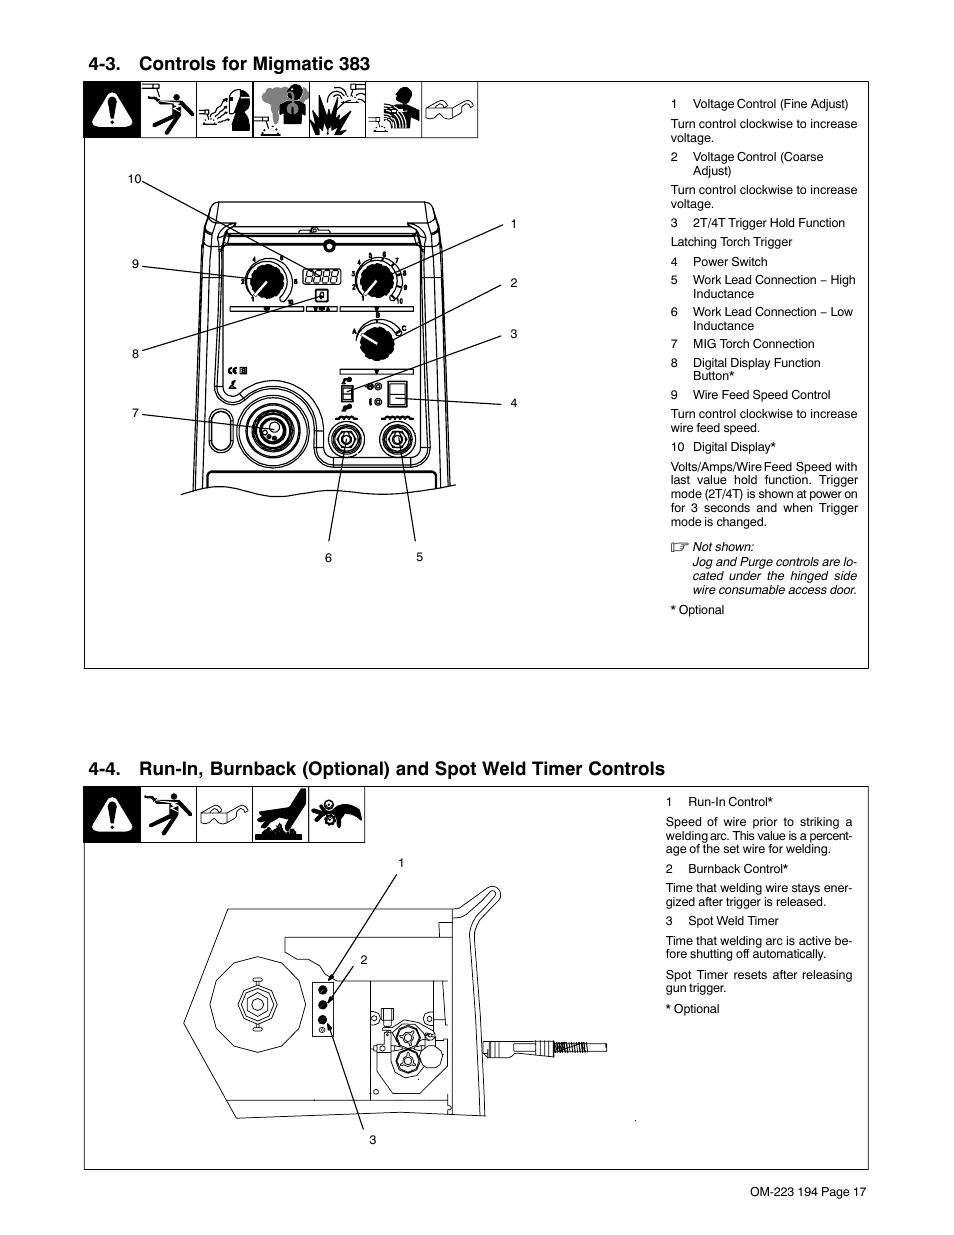 hight resolution of 3 controls for migmatic 383 miller electric 383 user manual page 21 48